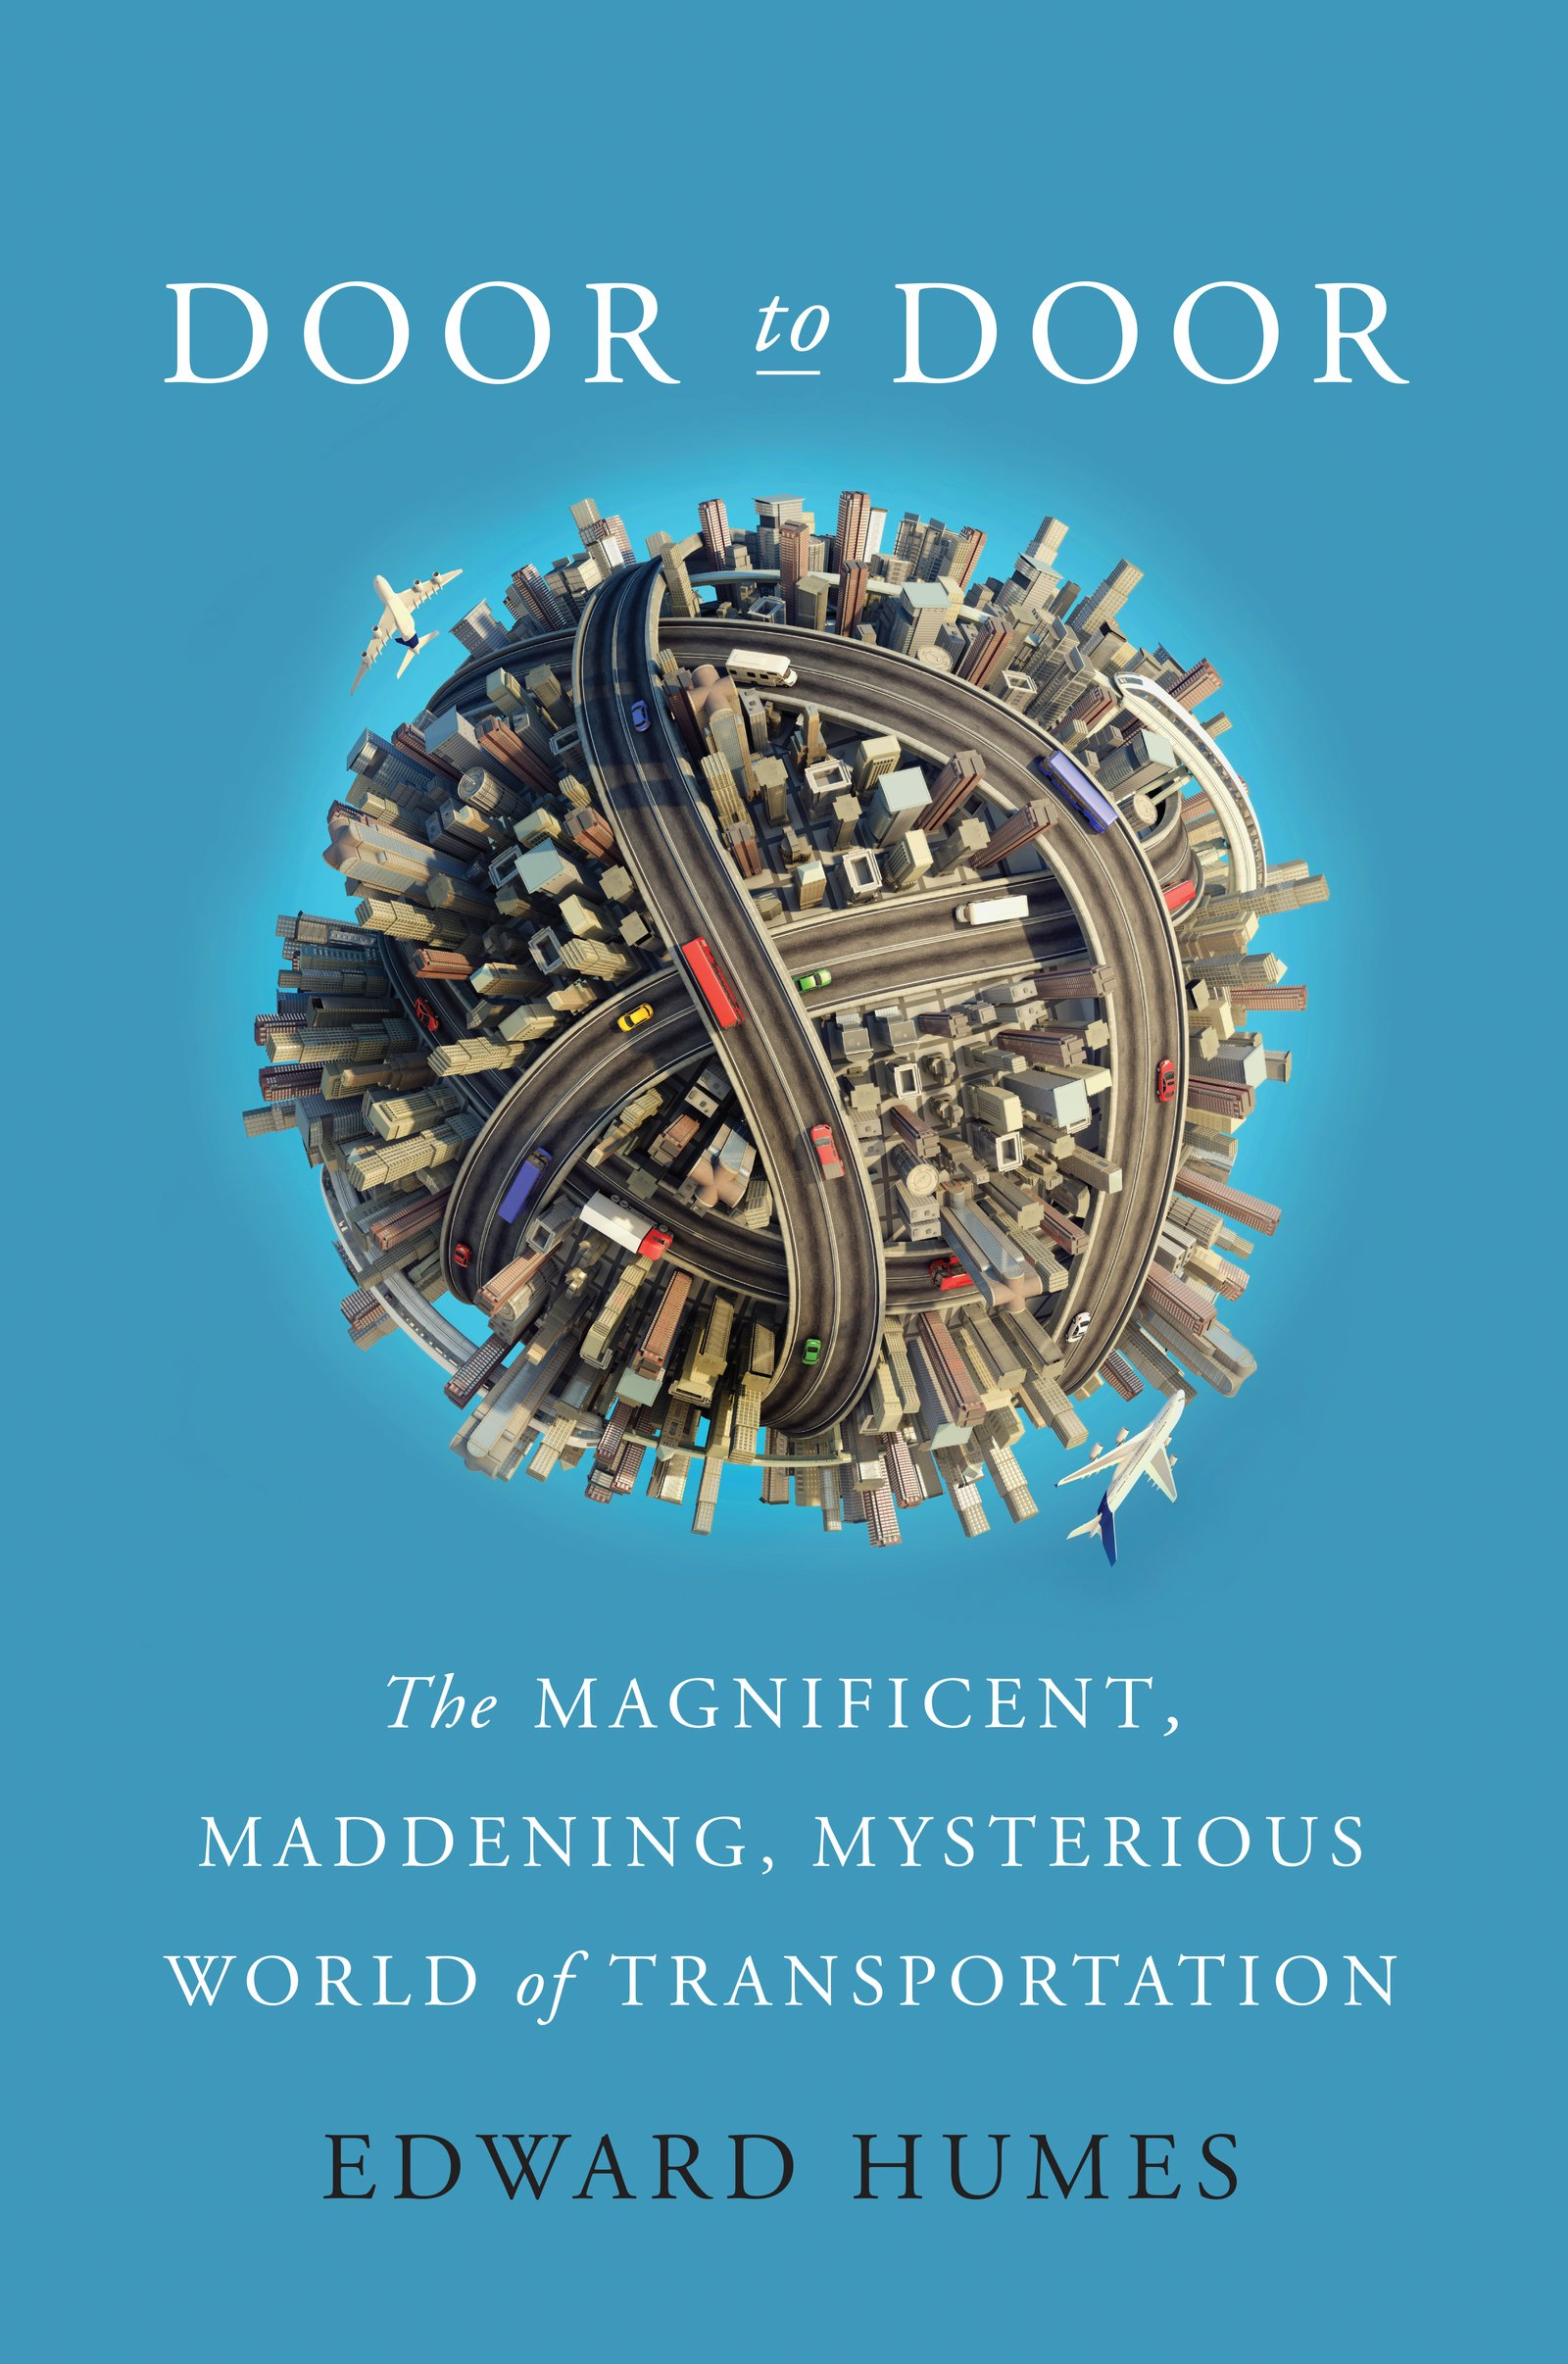 Door to Door: The Magnificent, Maddening, Mysterious World of Transportation ISBN-13 9780062372079